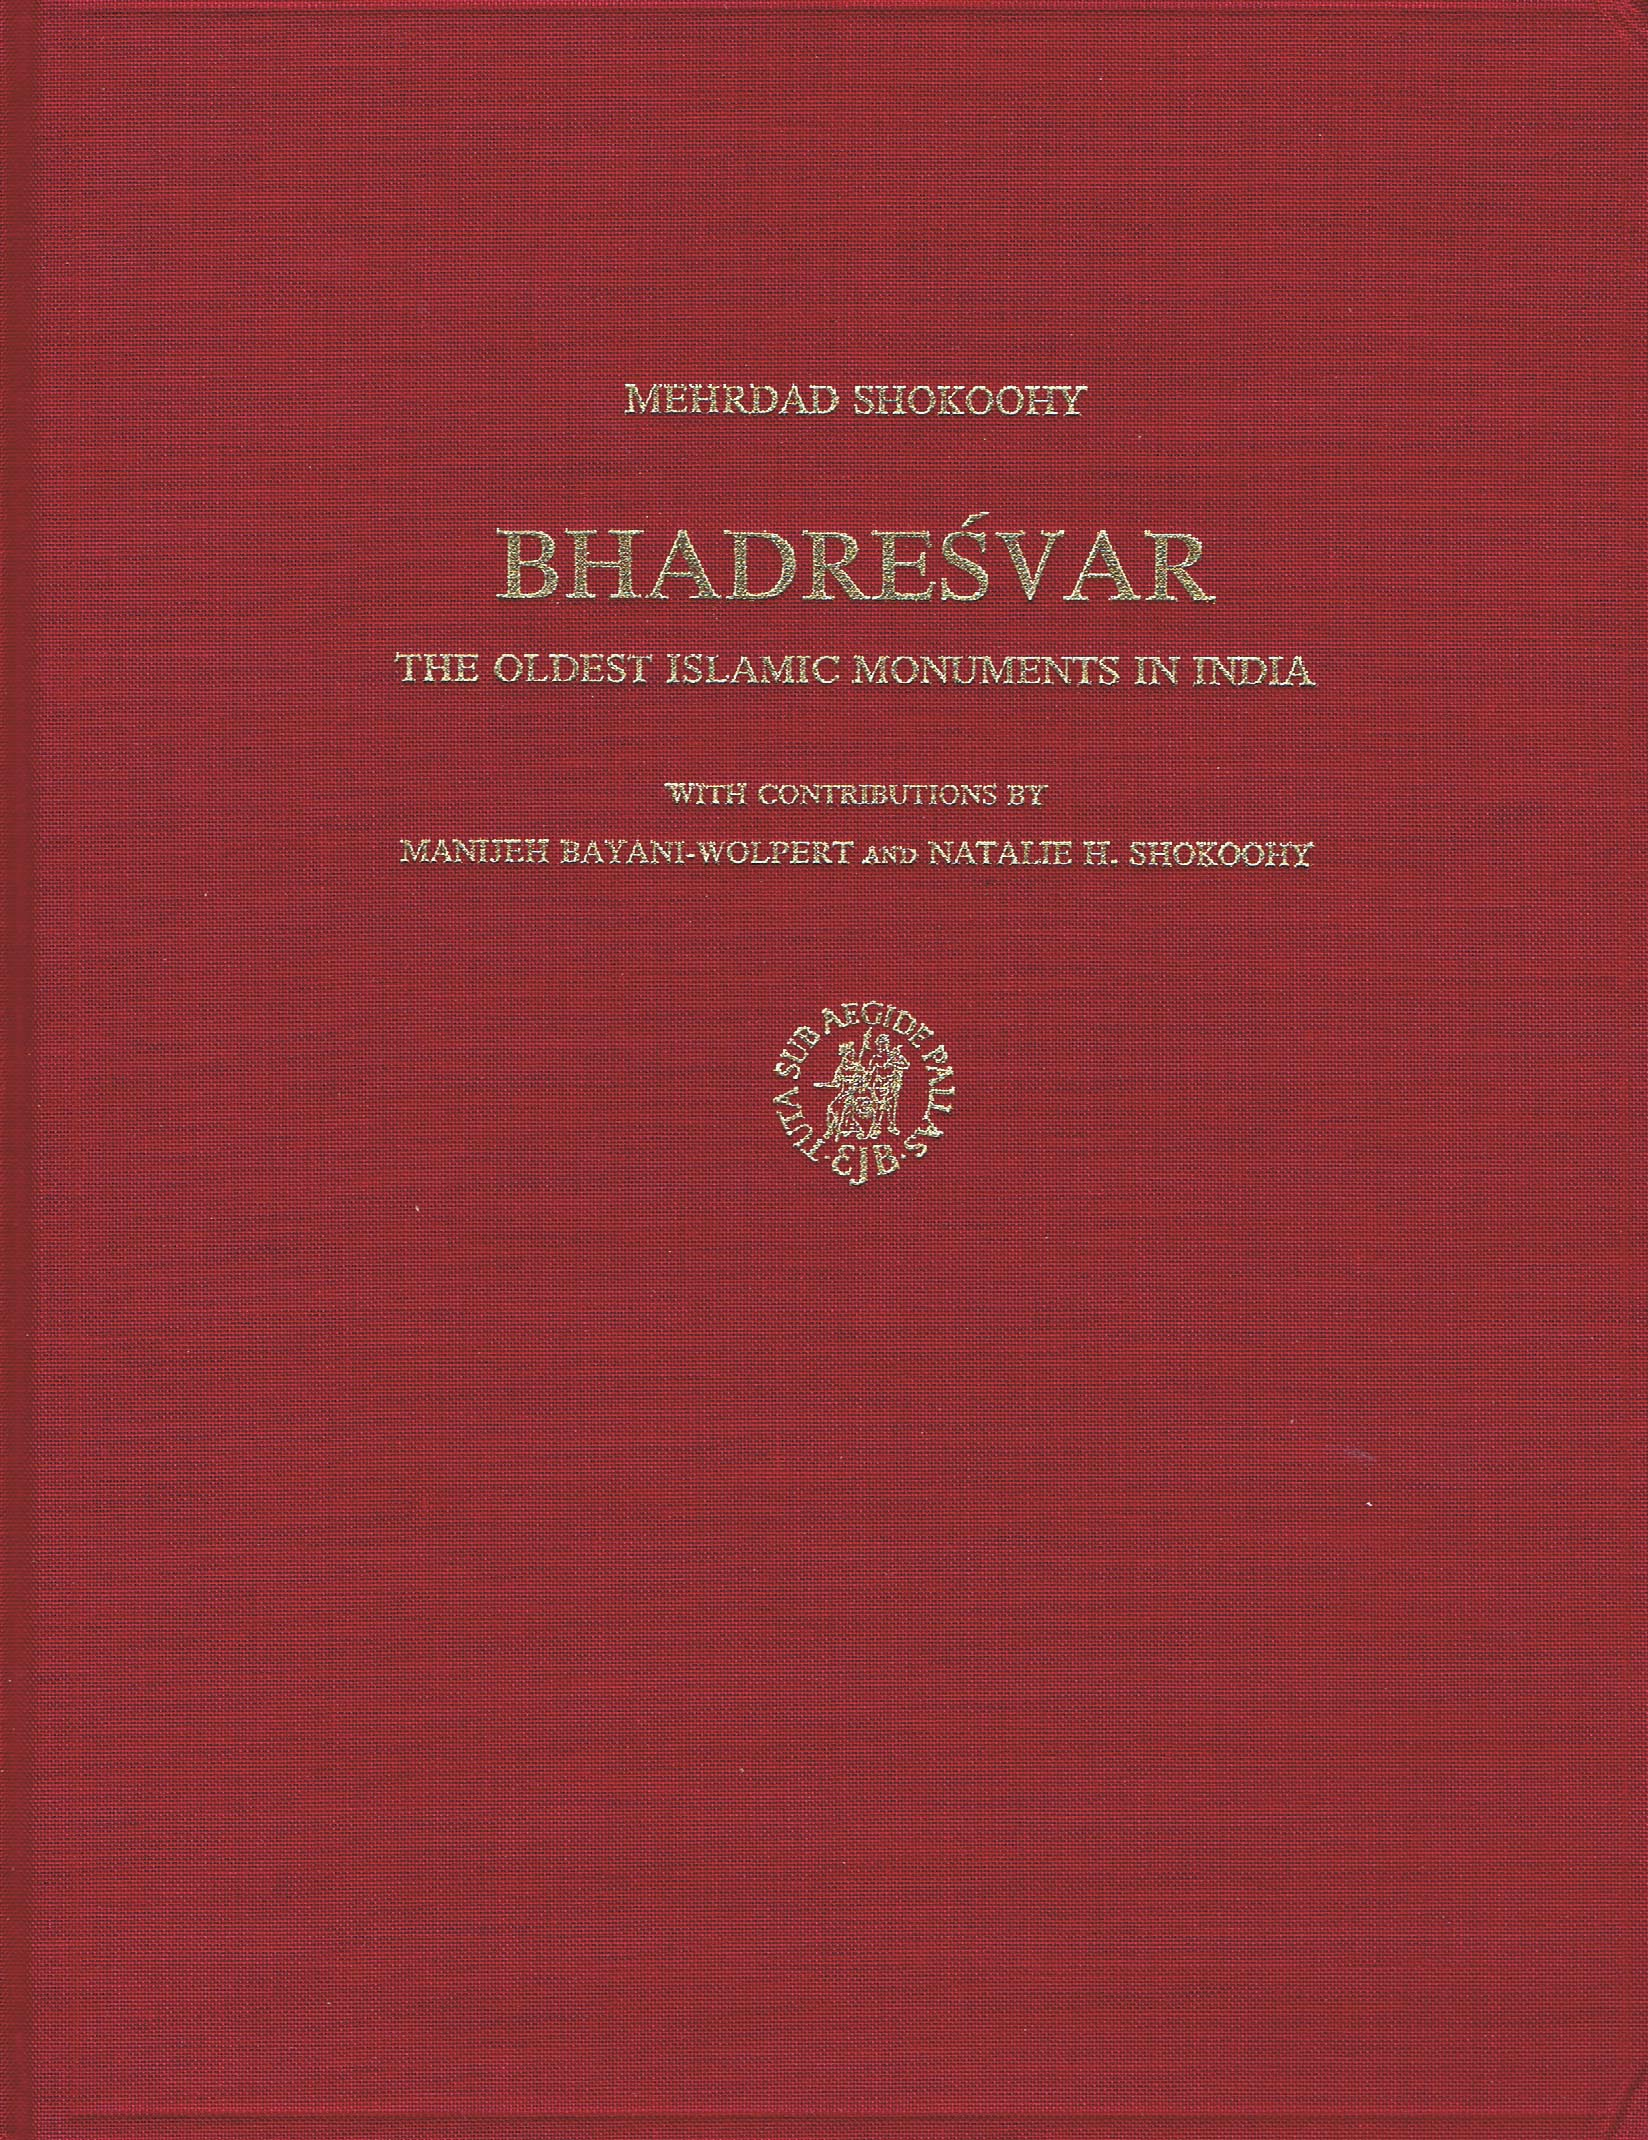 01_Bhadresvar_book_cover